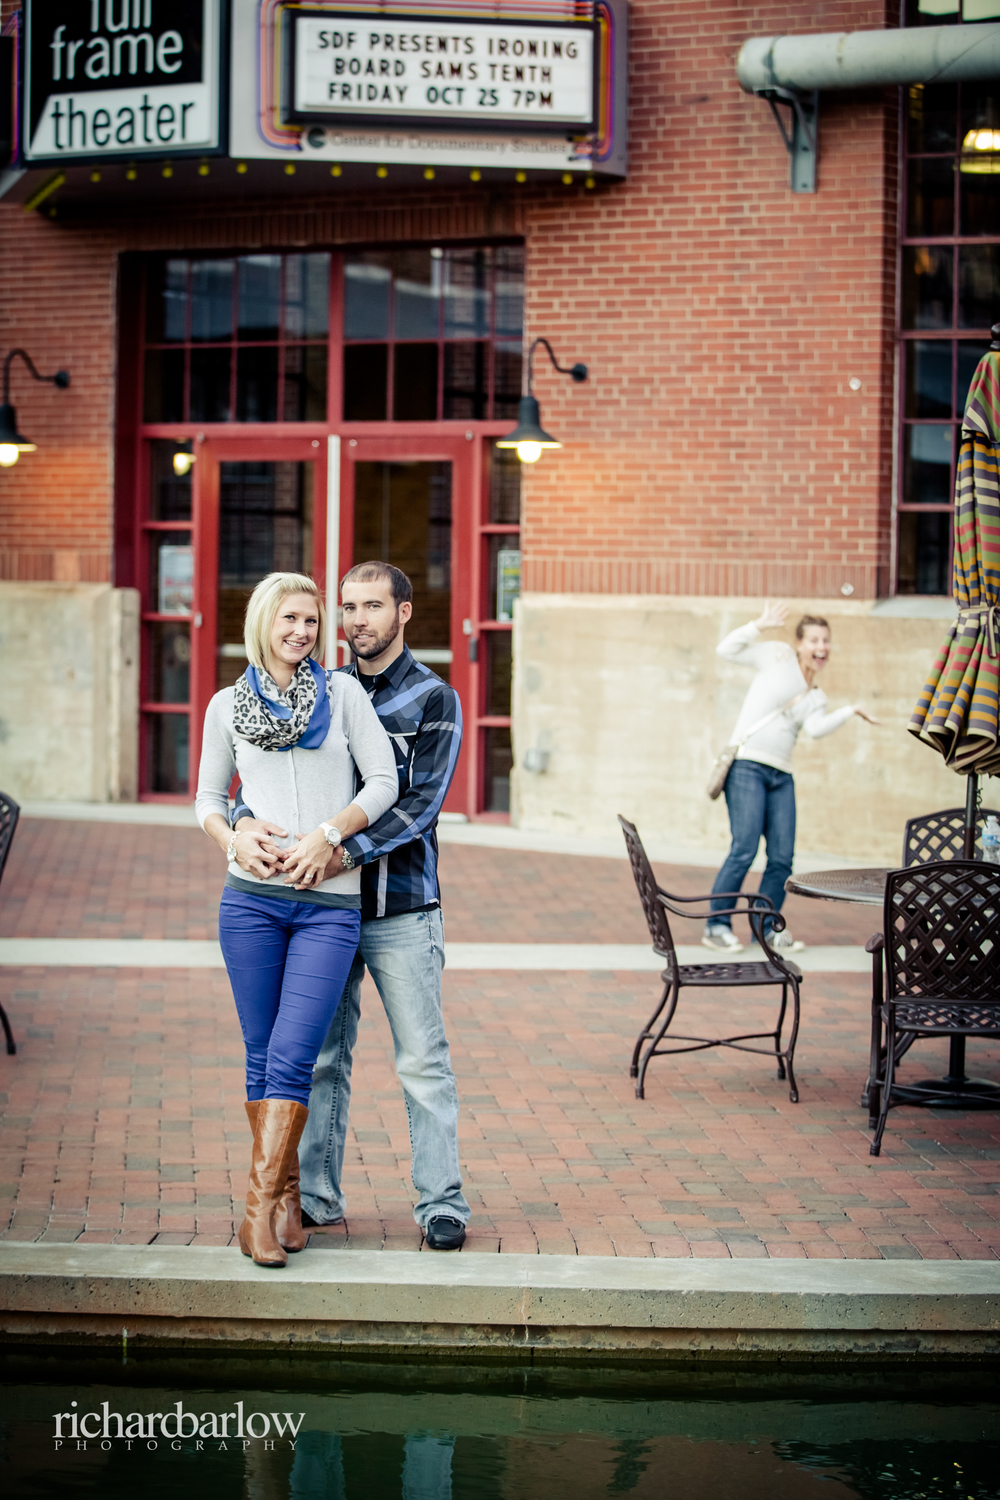 richard barlow photography - Mike and Renee Engagement Session NC-16.jpg